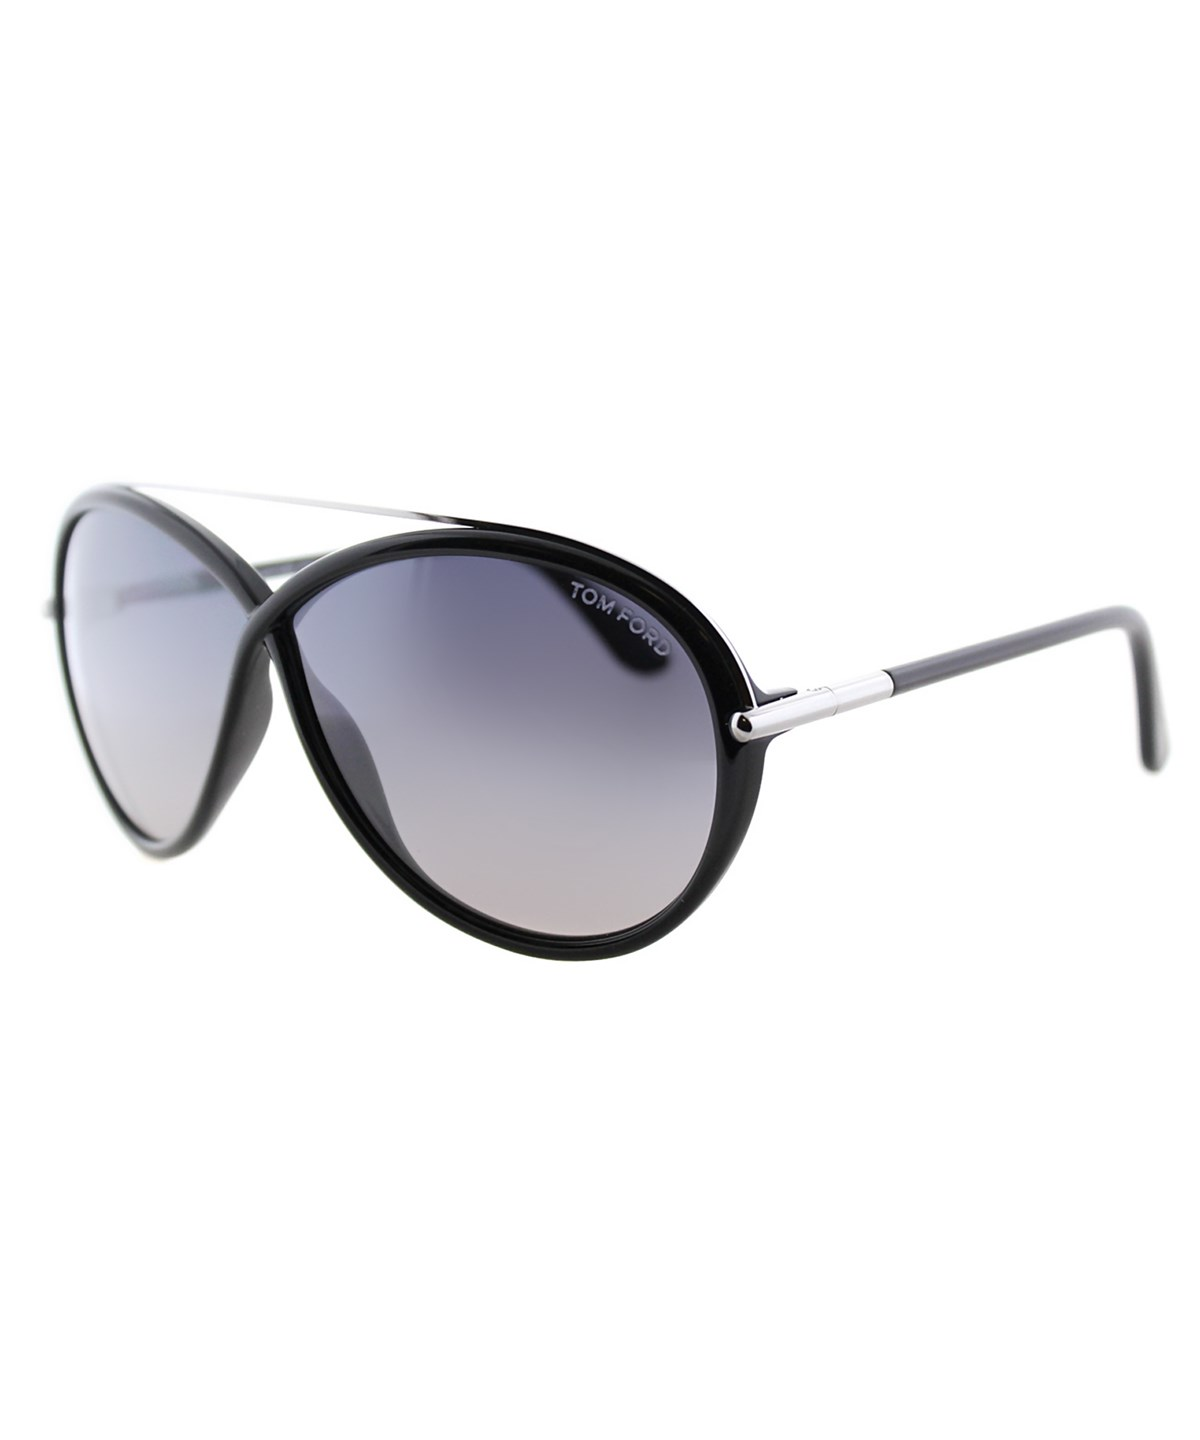 Tom Ford Tamara Fashion Plastic Sunglasses In Shiny Black